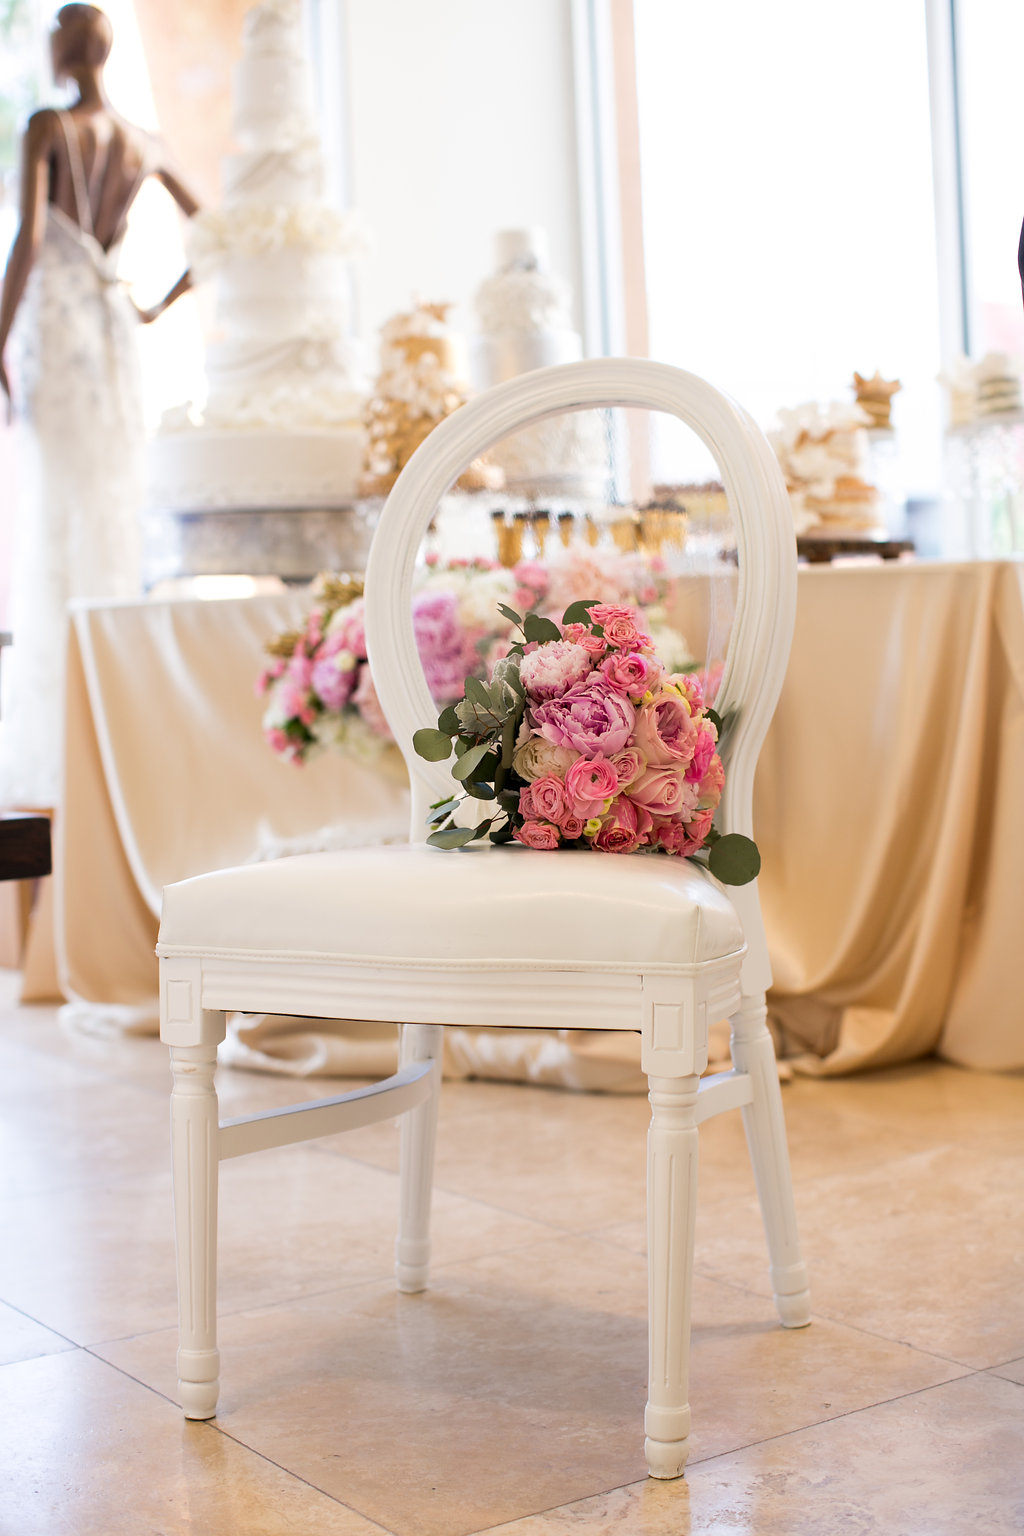 Louis Xvi Chair Or Dior Chair Party Rentals Los Angeles